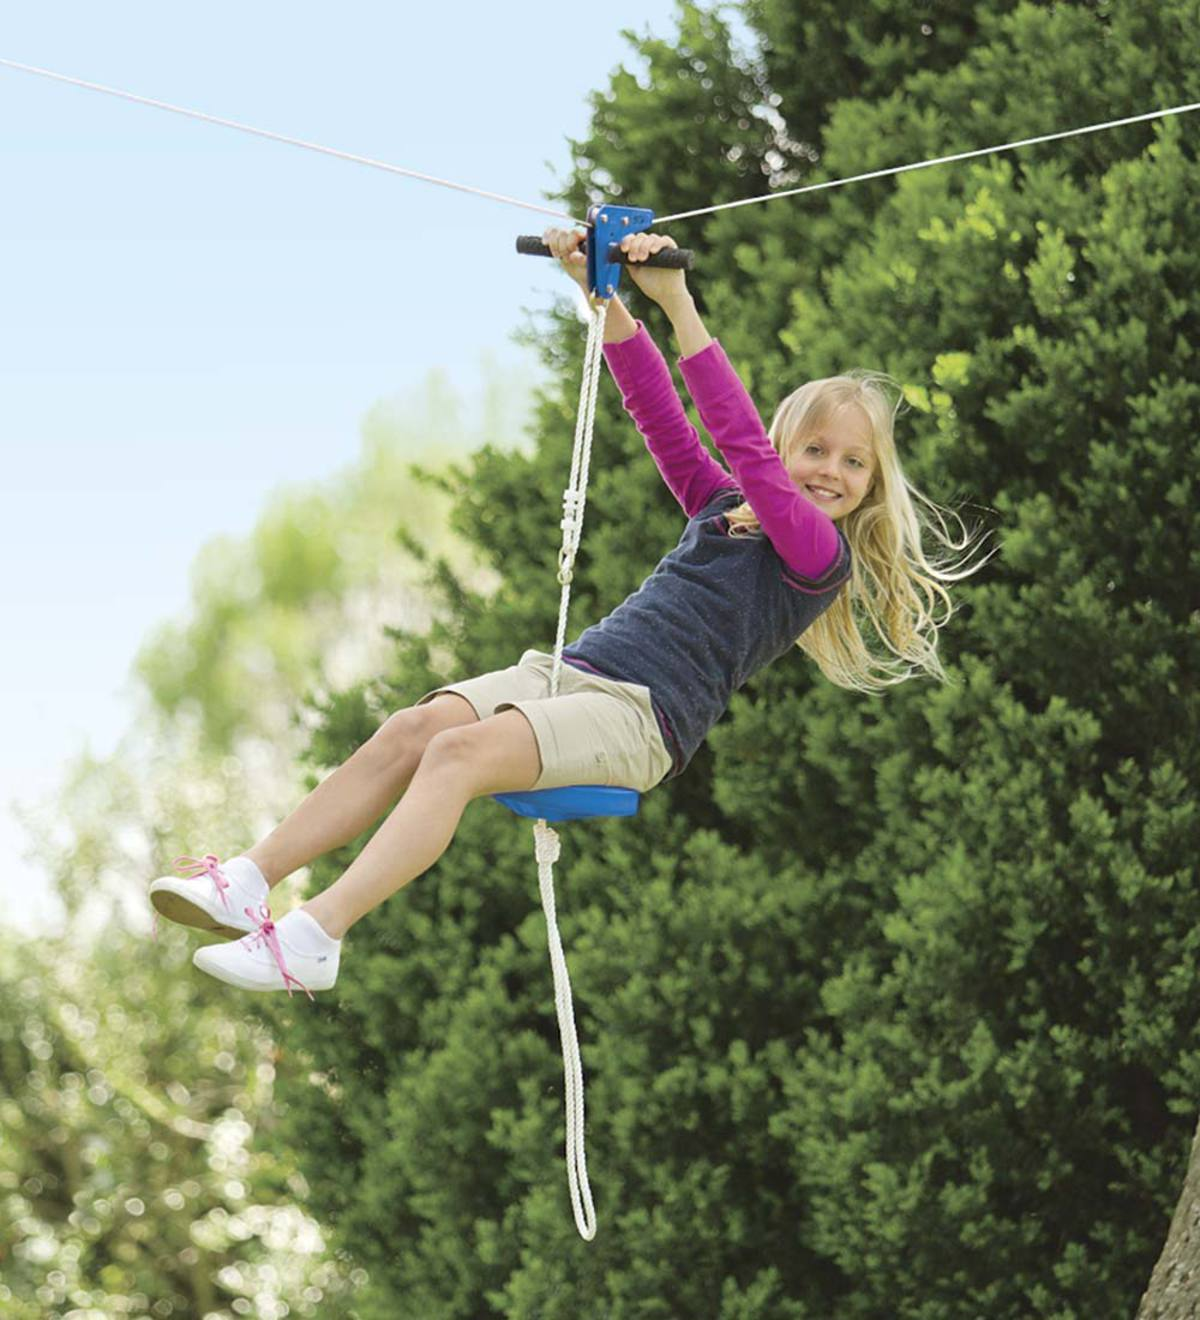 Zip Lines For Backyards kids zipline-with-seat kits | 10 years old | ages | hearthsong